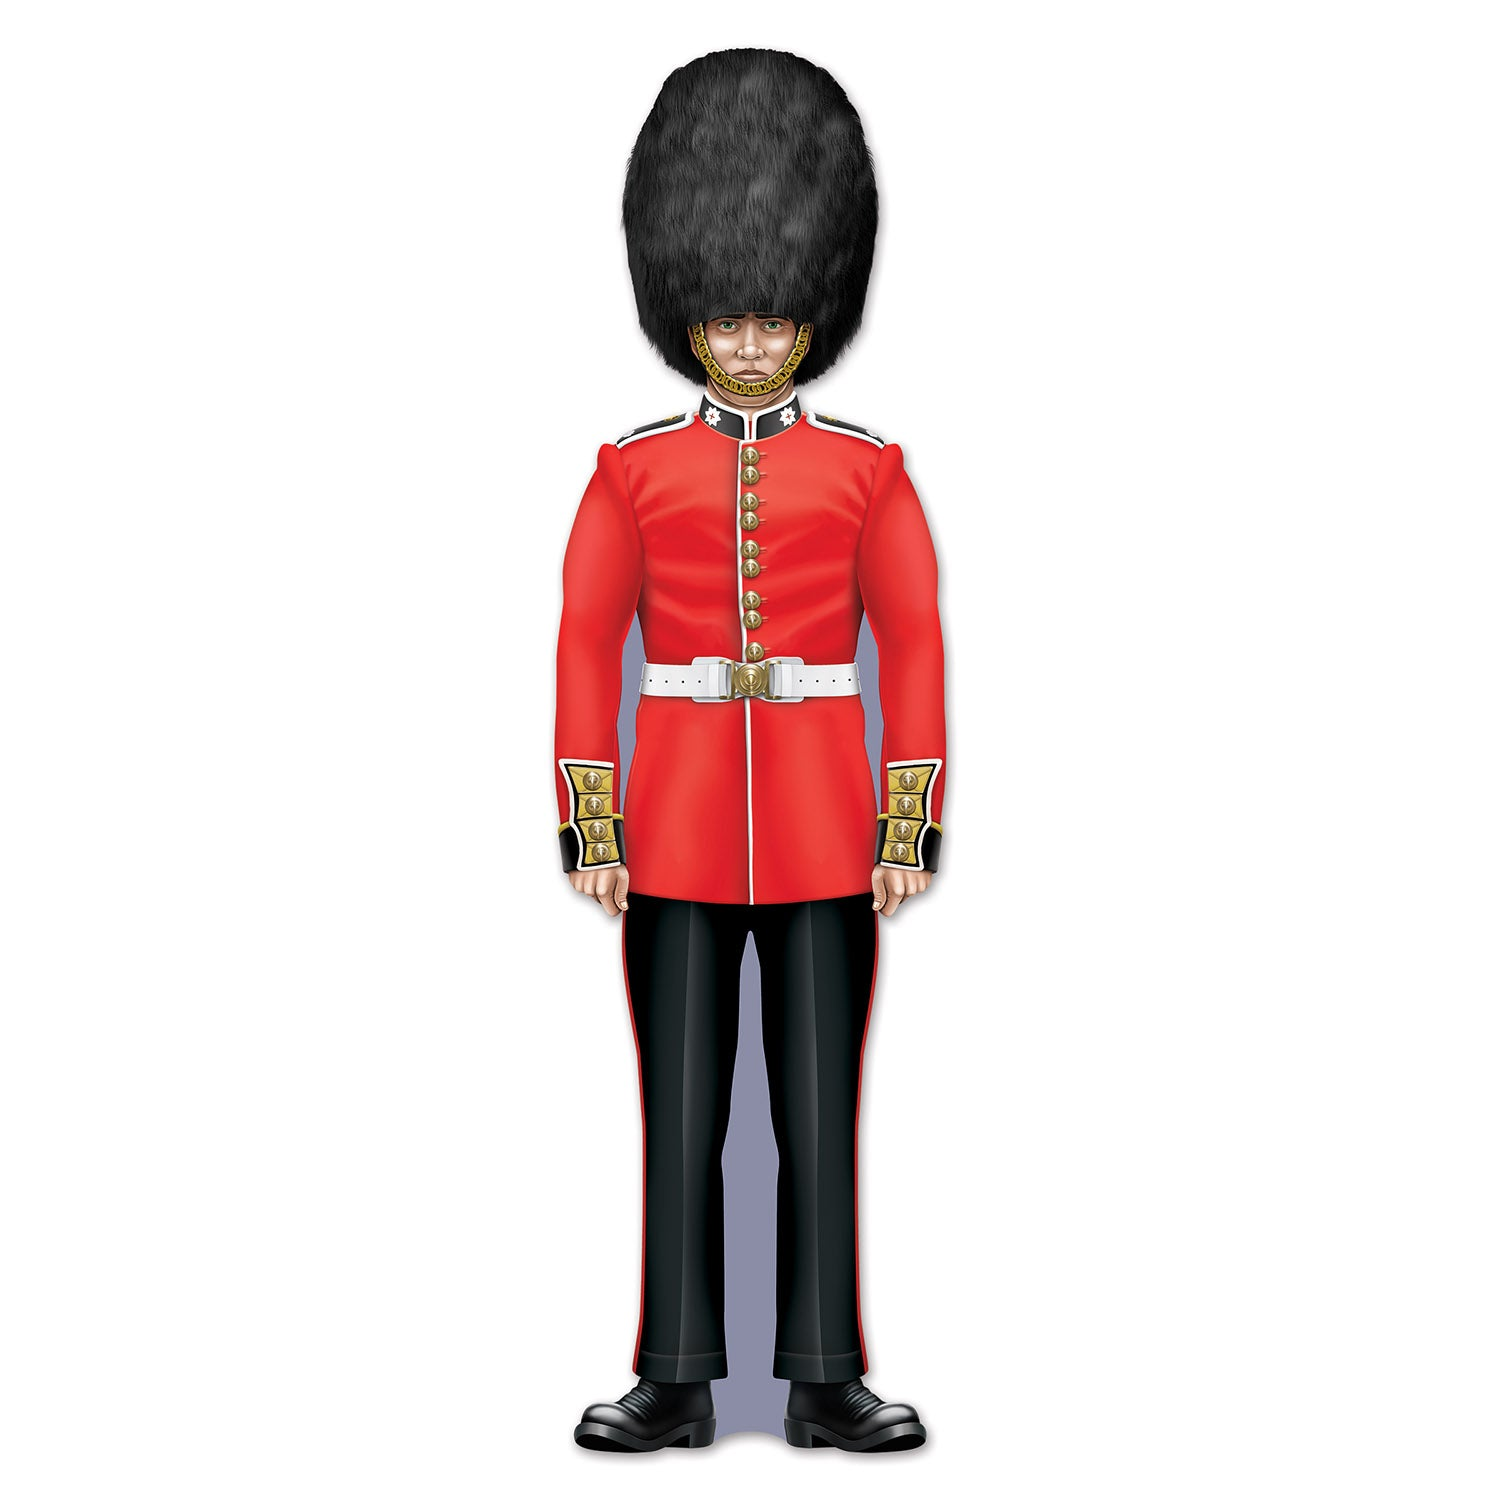 Royal Guard Cutout by Beistle - British Theme Decorations